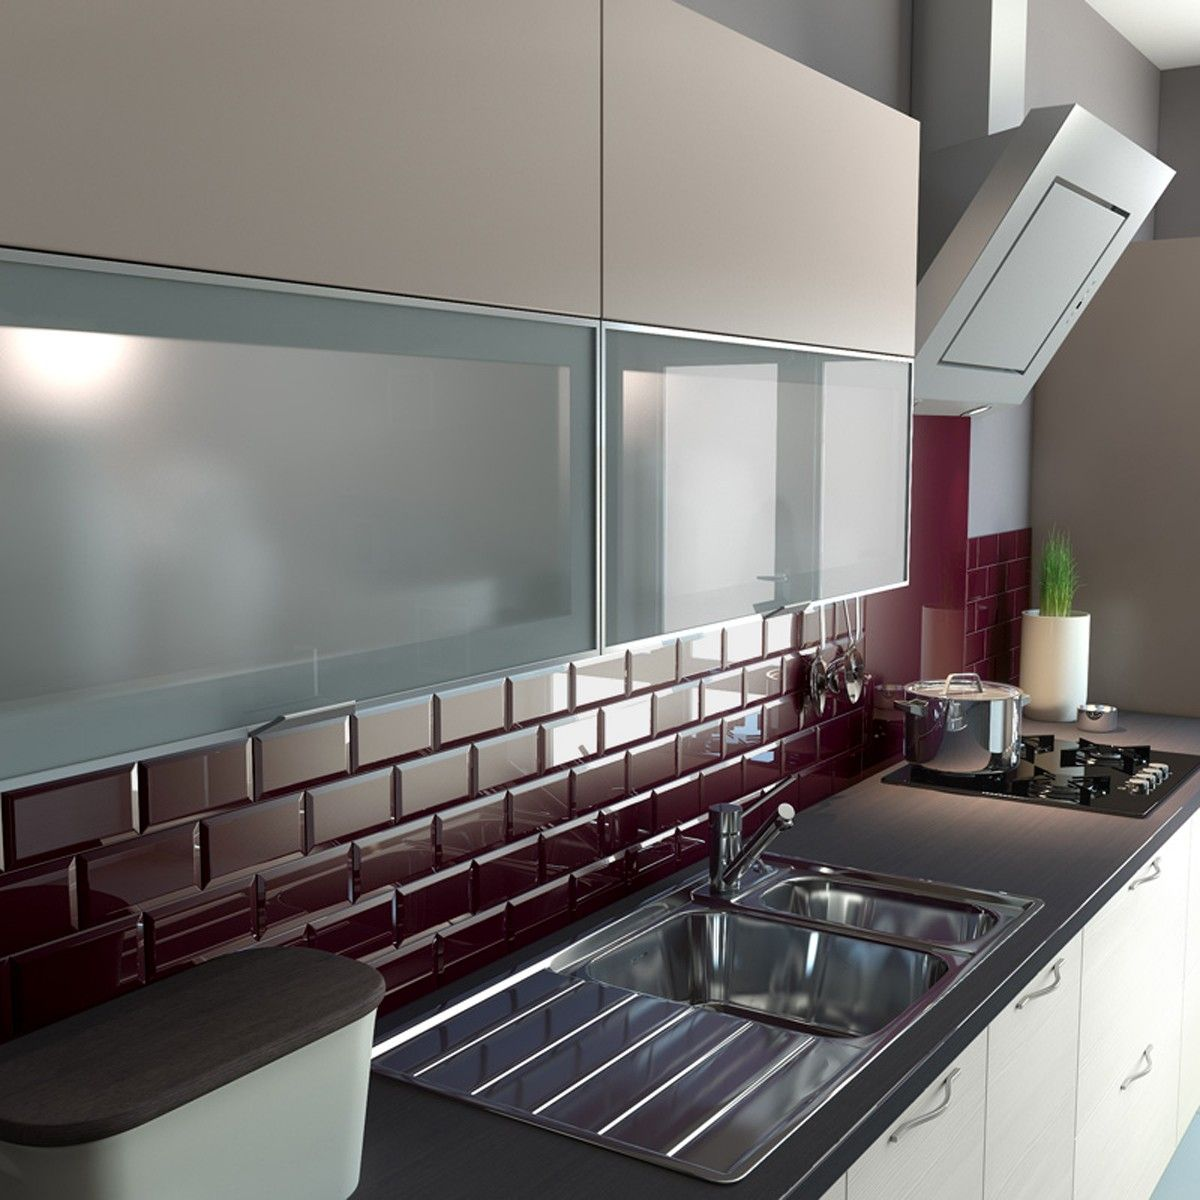 Kitchen Wall Tile Cost Per M